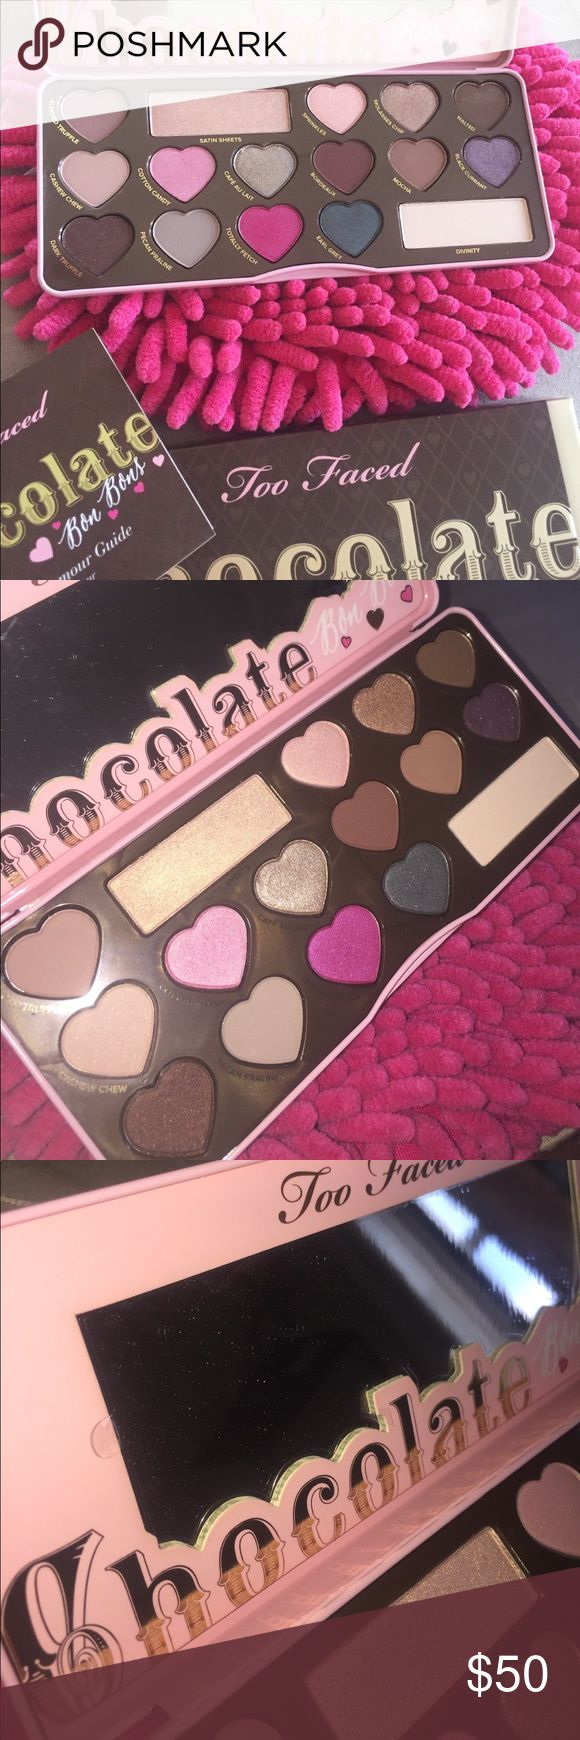 Too faced chocolate bon bons palette 💕 Brand new never used. 100% authentic I do not buy or sell fake makeup. Still in packaging purchased it about 2 months ago haven't got around to it. Plastic still attached to mirror. Price firm. Still for sale I think on sephora and hsn website Too Faced Accessories